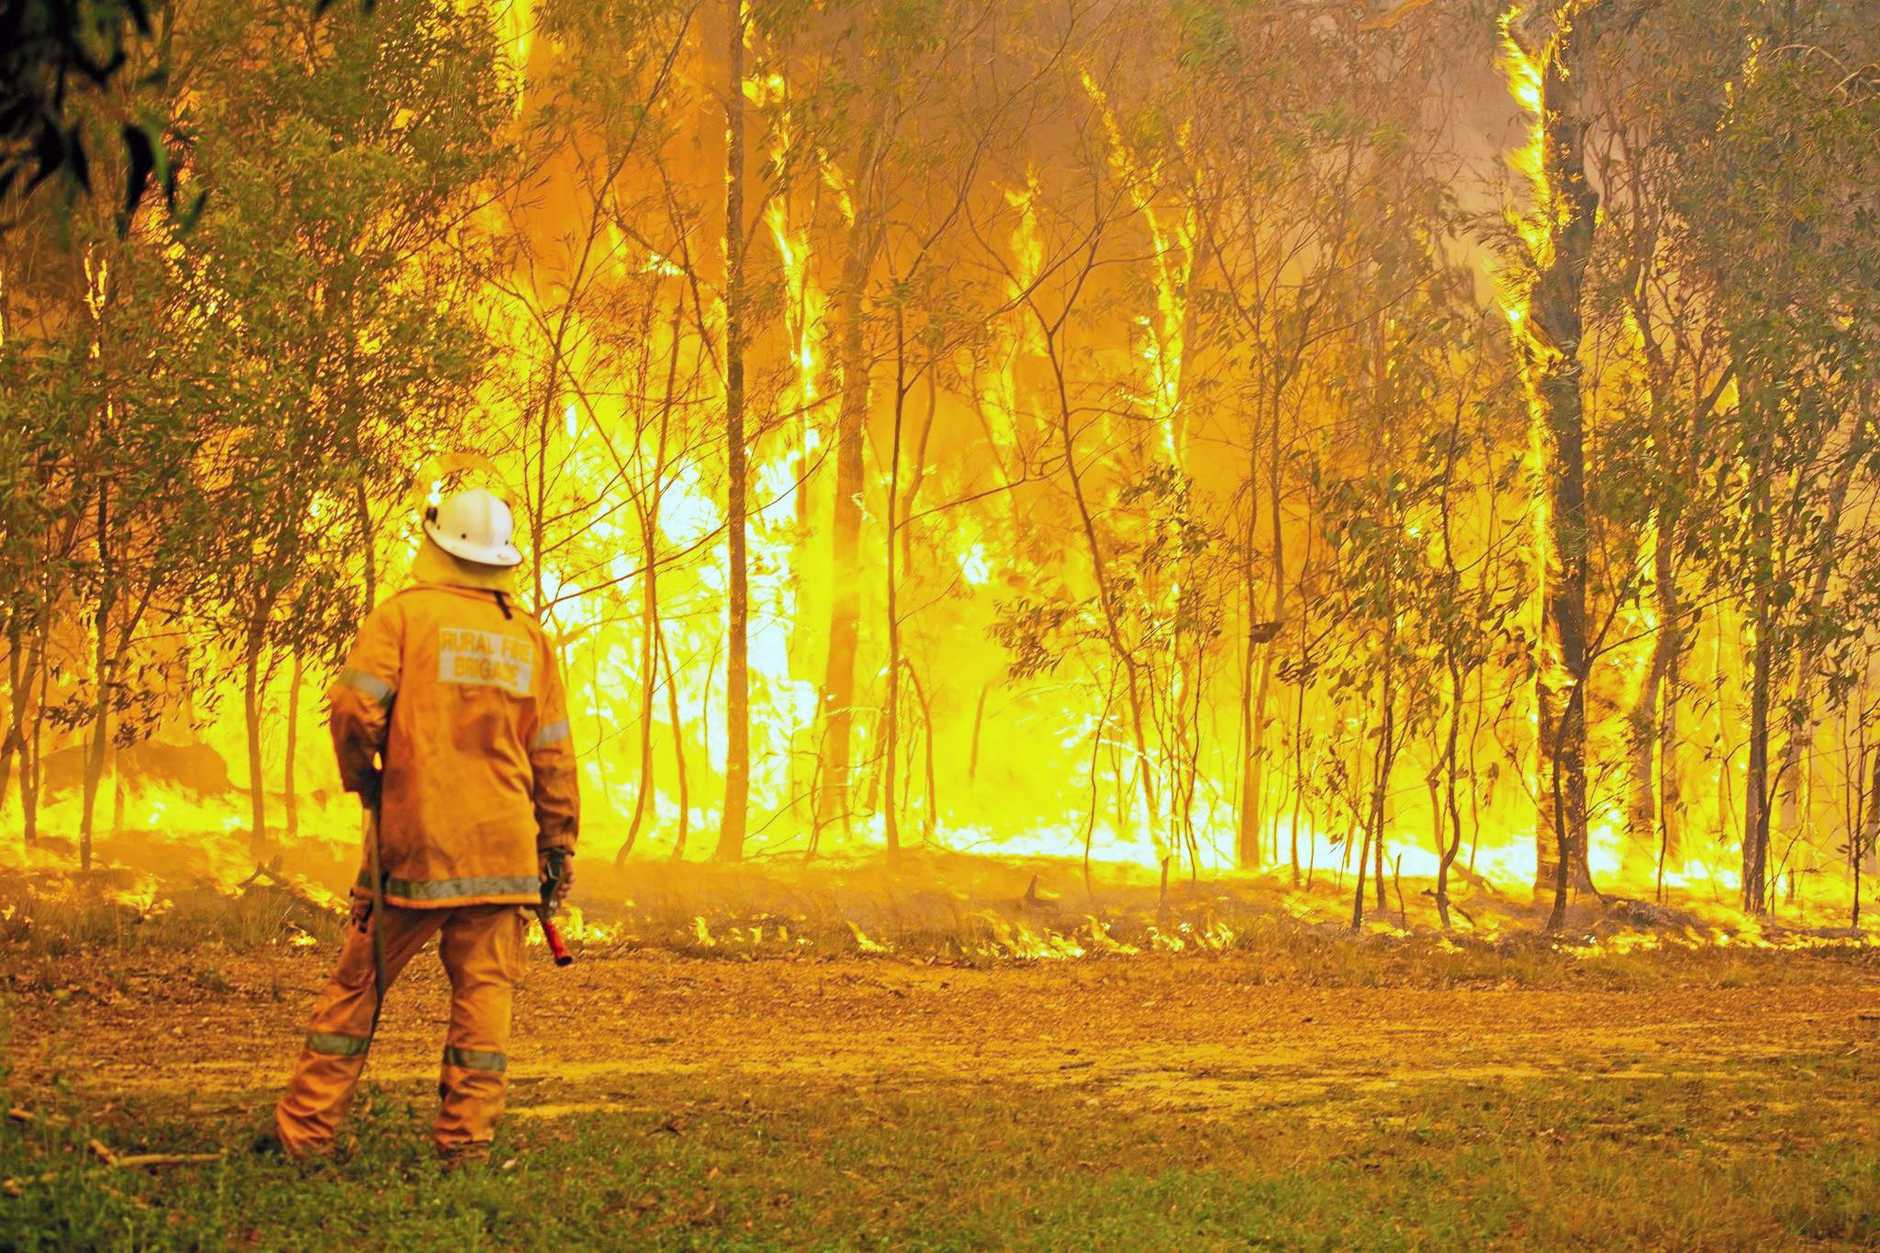 BURNING QUESTIONS: The LNP is not happy with the report into last year's fires.